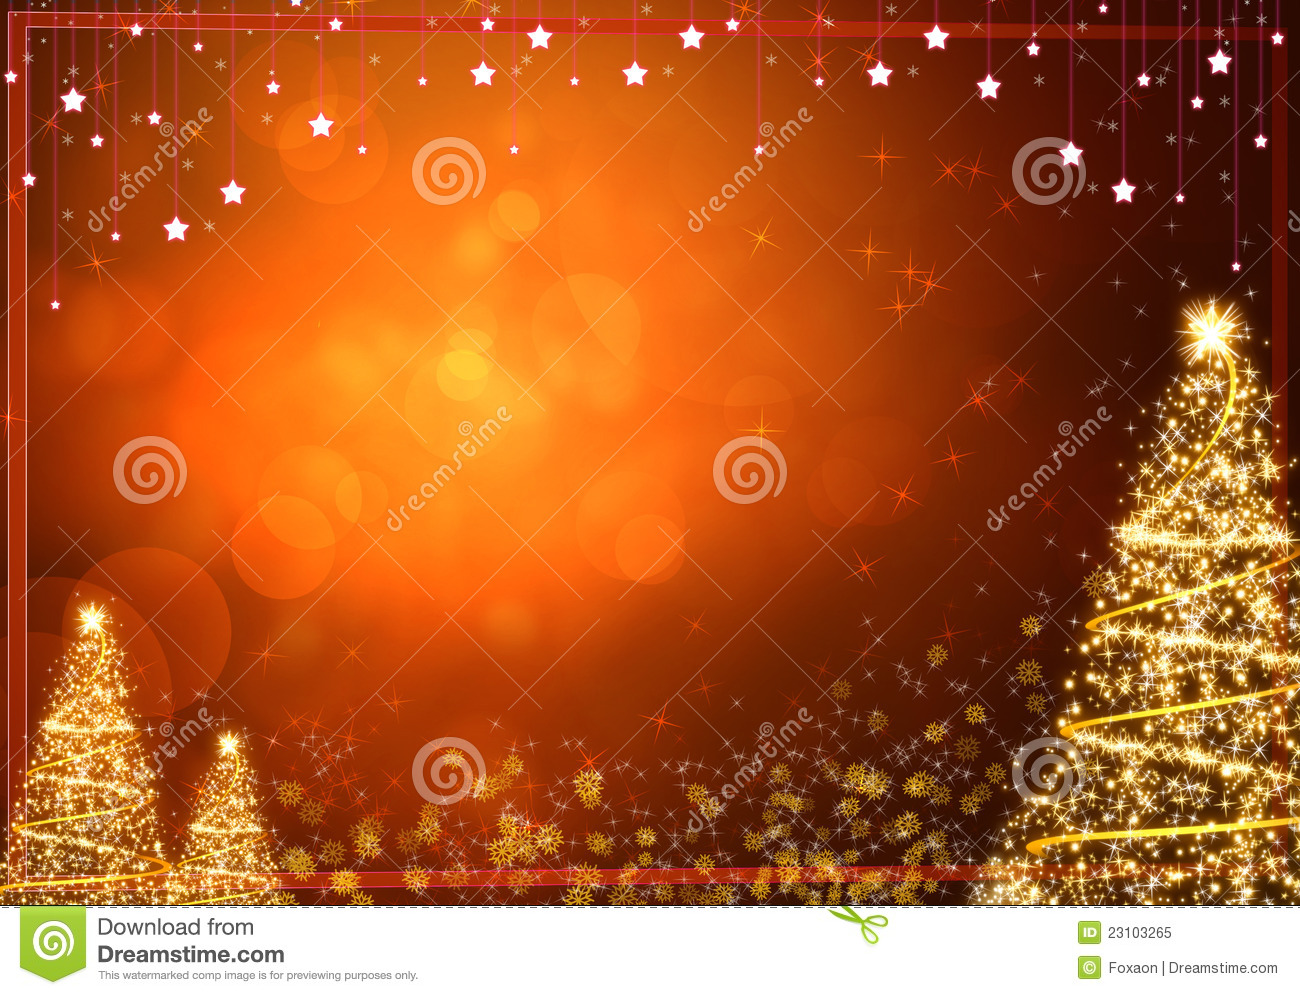 Free Illustration Background Christmas Red Gold: Winter Gold Christmas Tree Background Stock Illustration